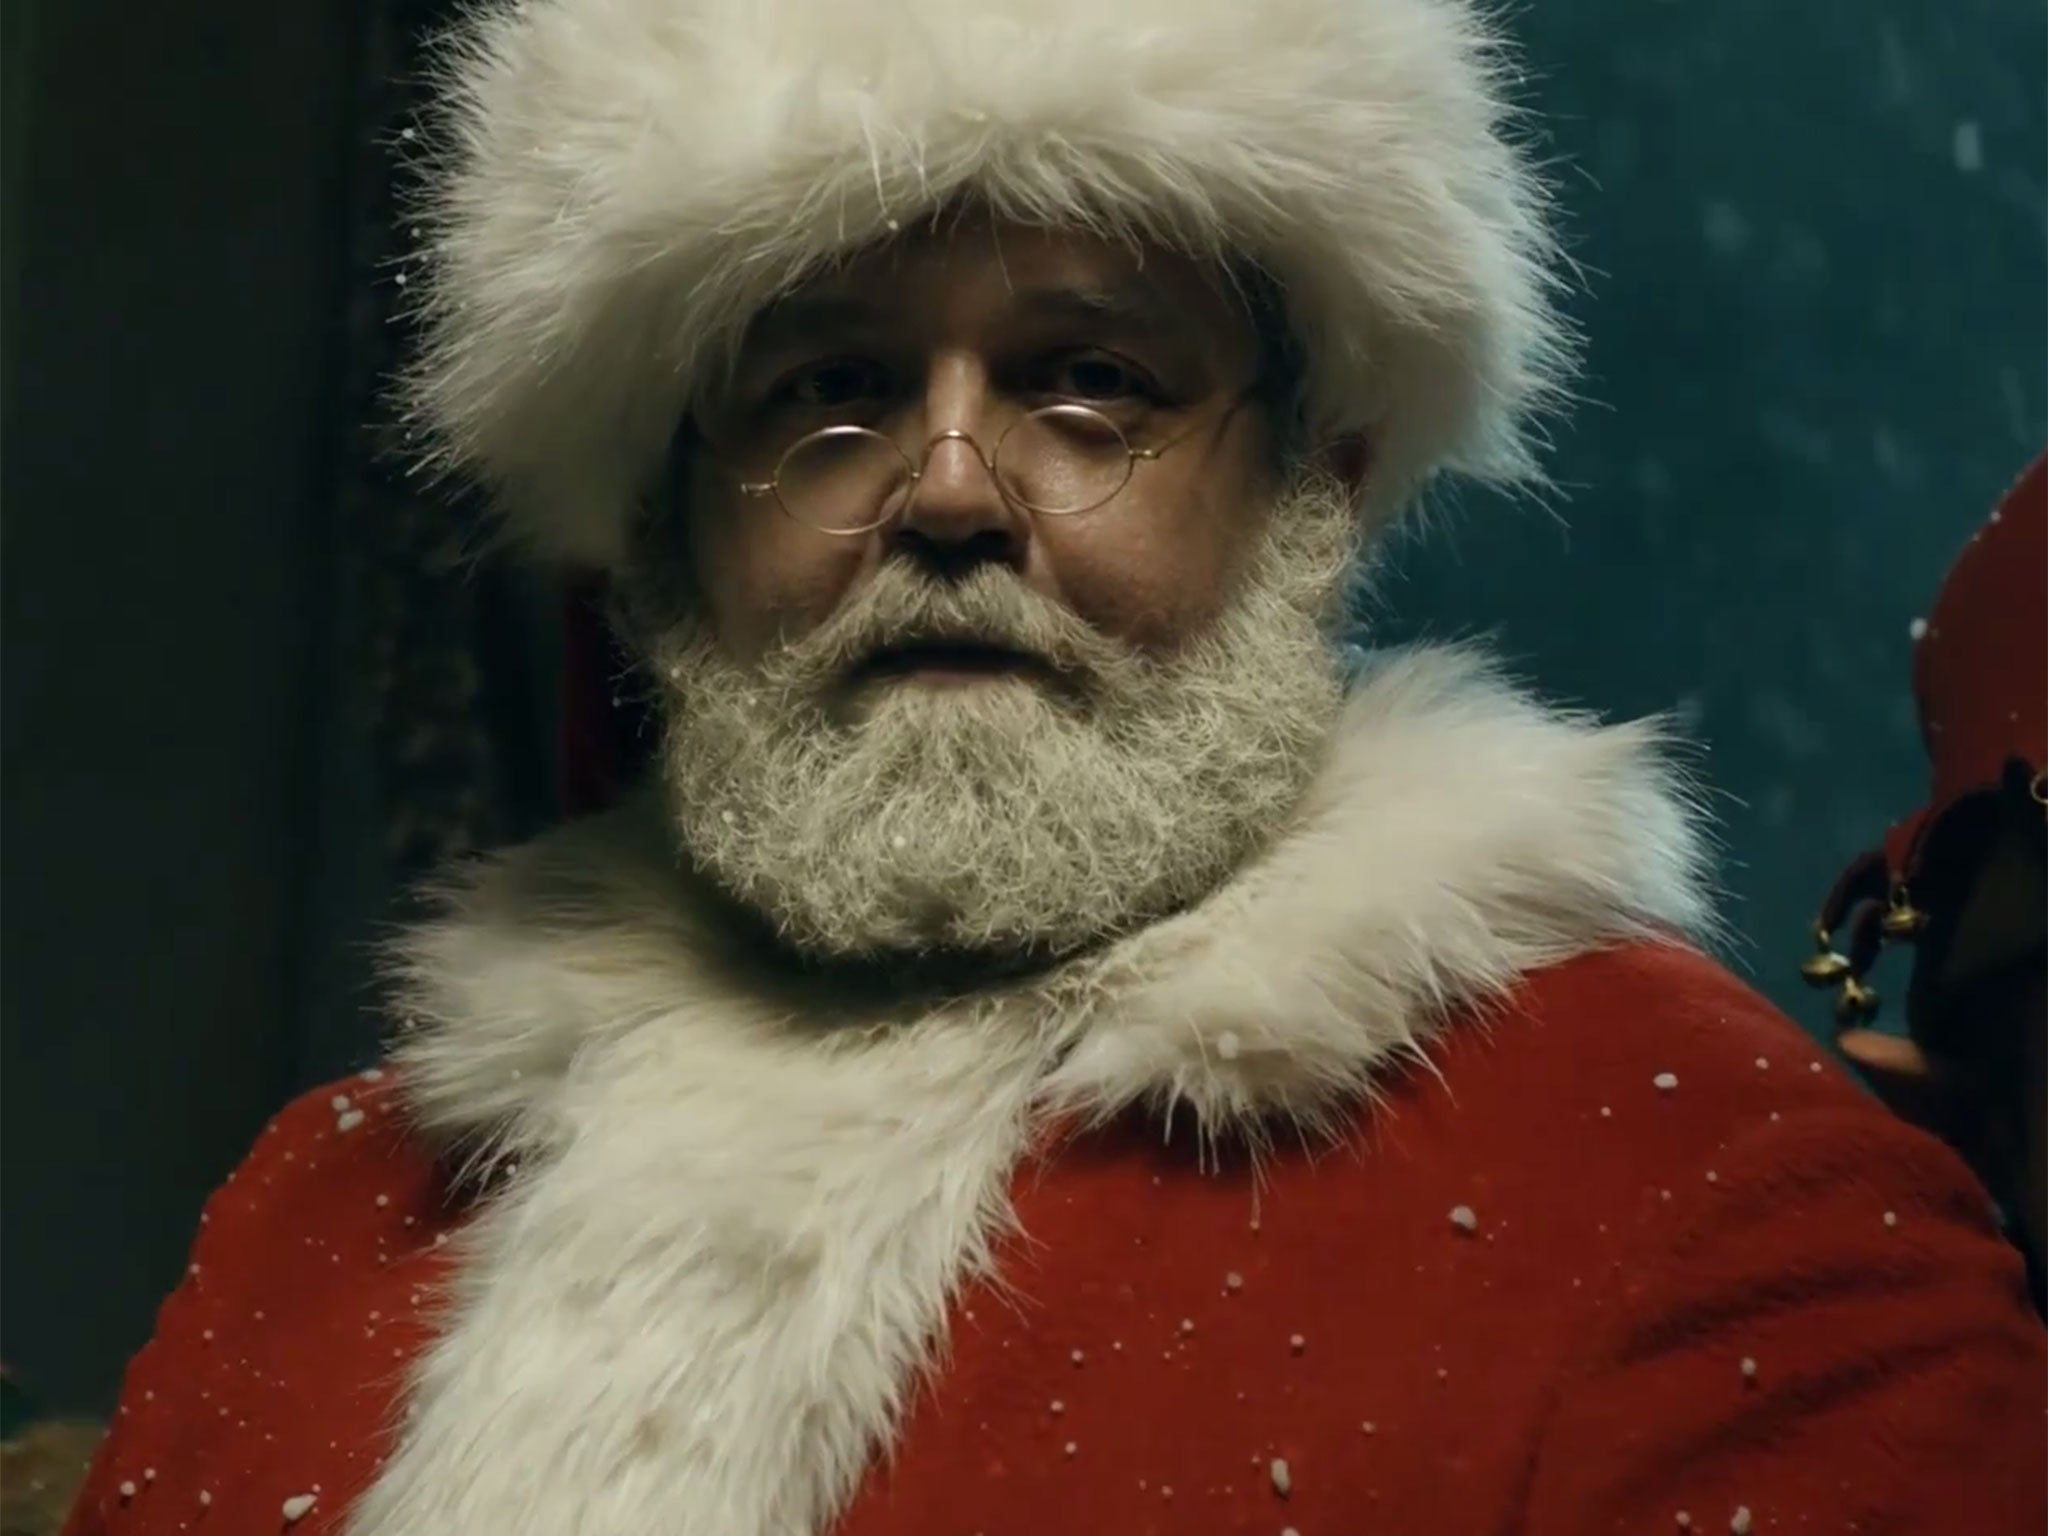 Doctor Who Christmas special: Nick Frost joins Peter Capaldi and Jenna Coleman as badass Santa in new teaser clip